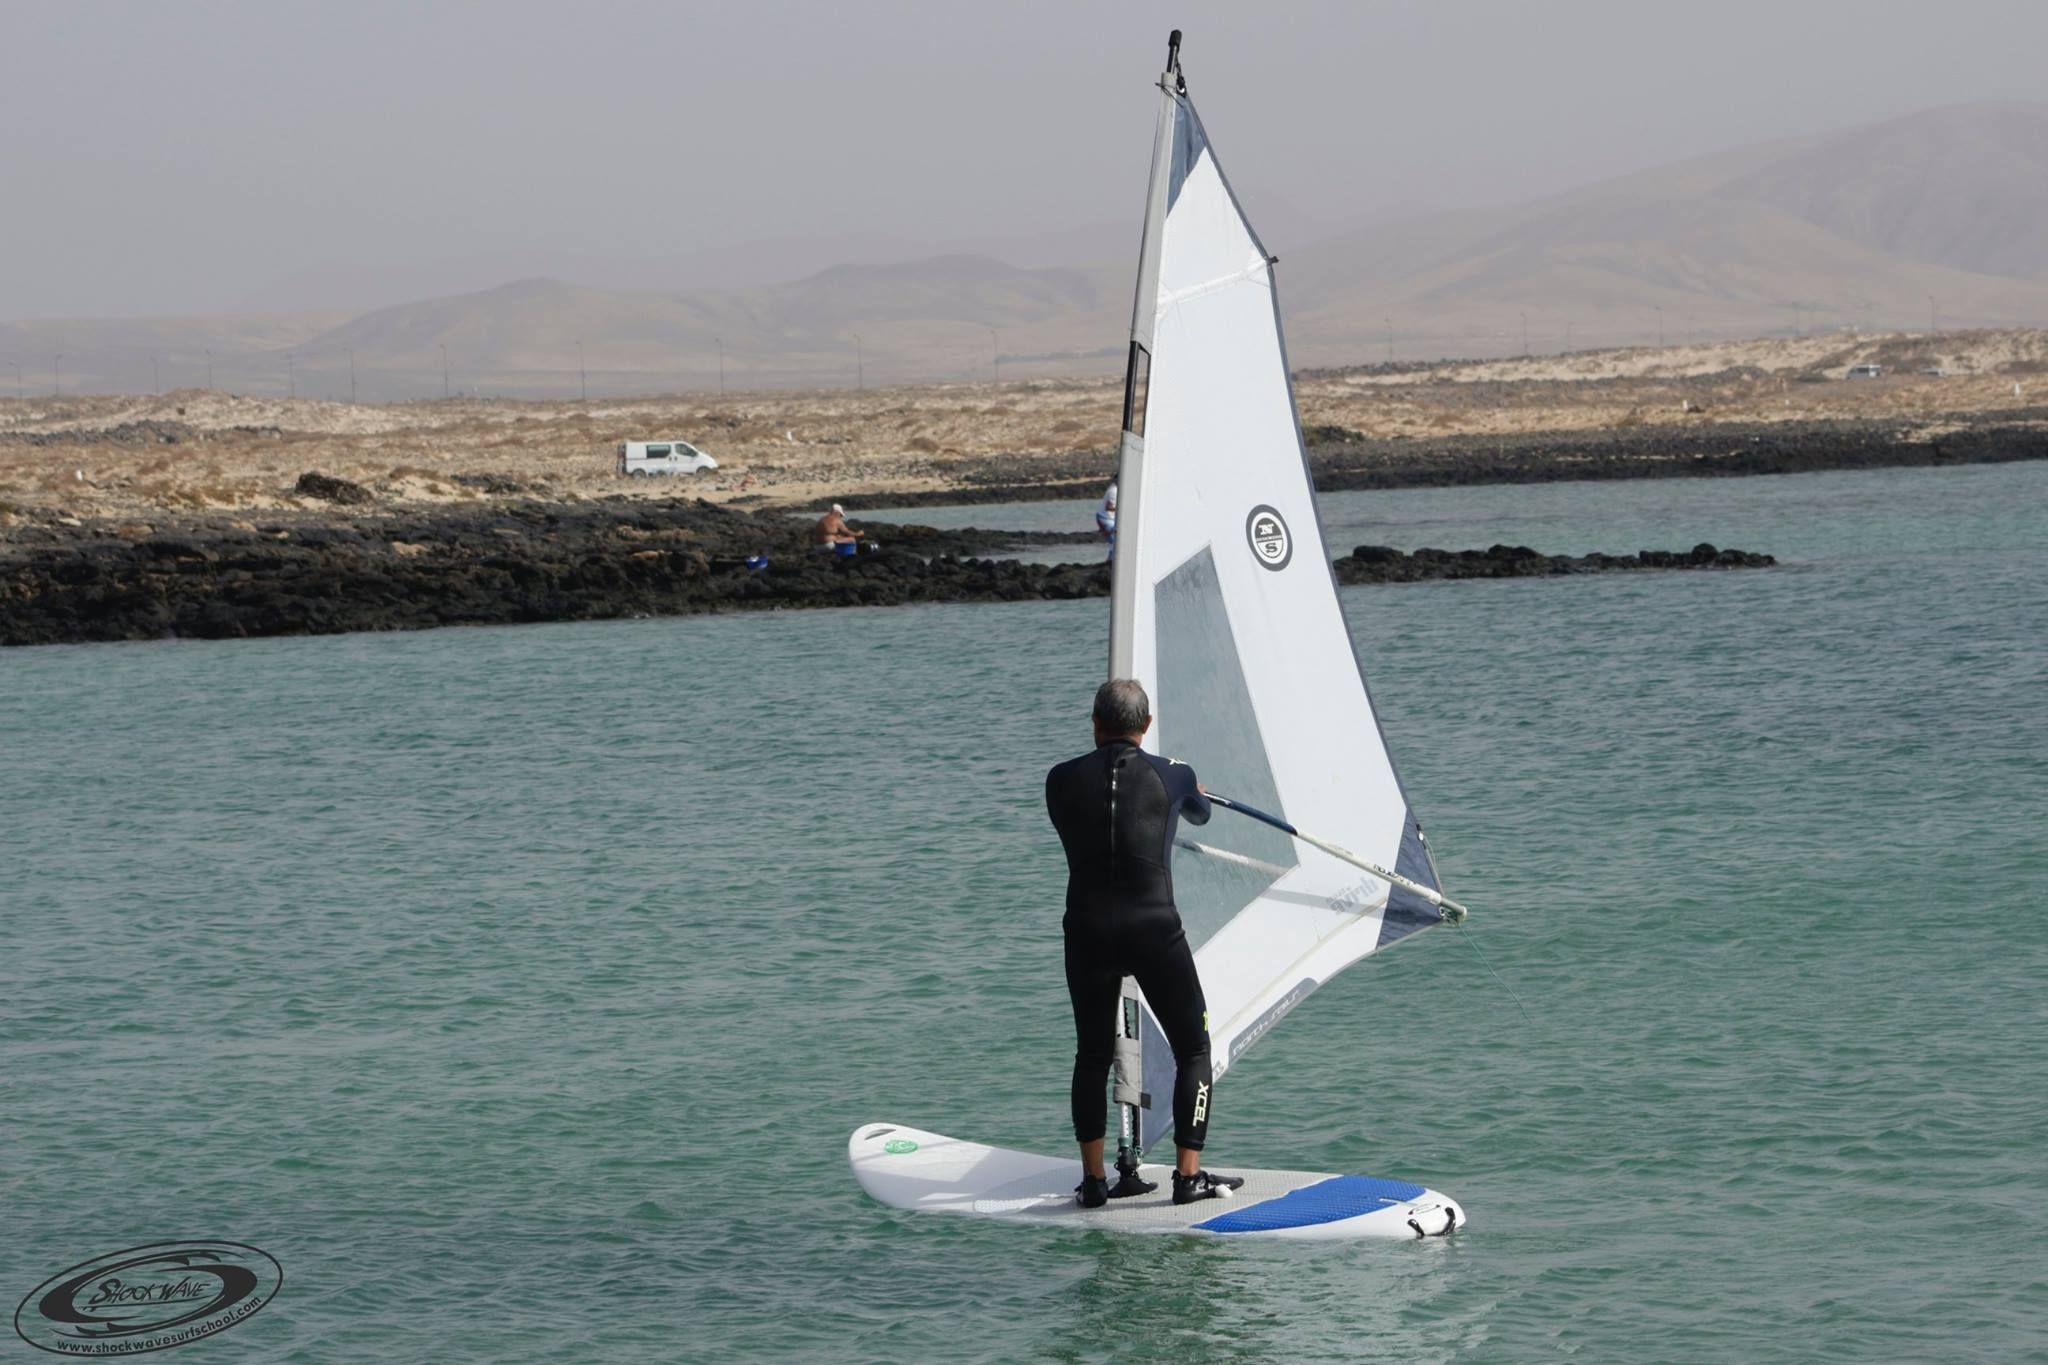 Windsurf school in El Cotillo